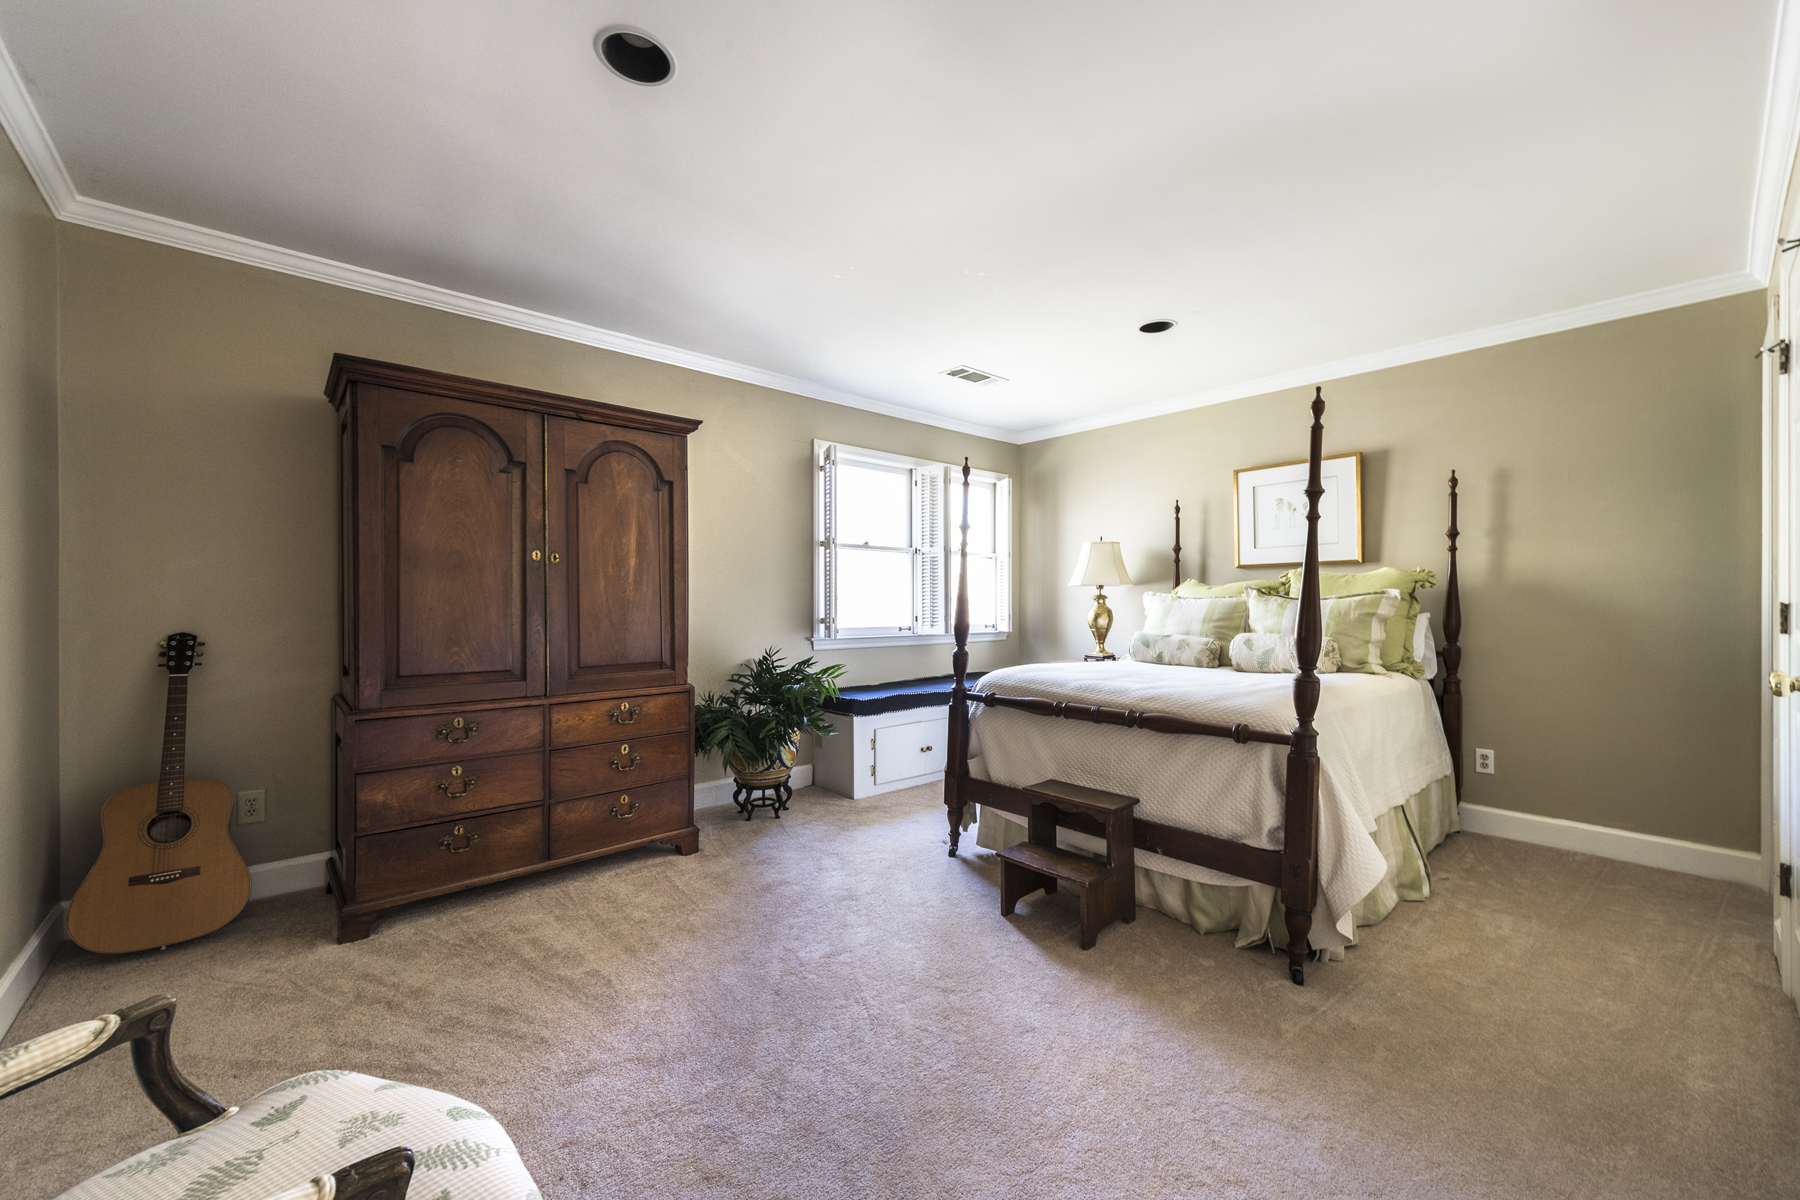 Additional photo for property listing at Spacious Living In Atlanta Country Club 370 Dogwood Trail Marietta, Georgia 30067 Hoa Kỳ